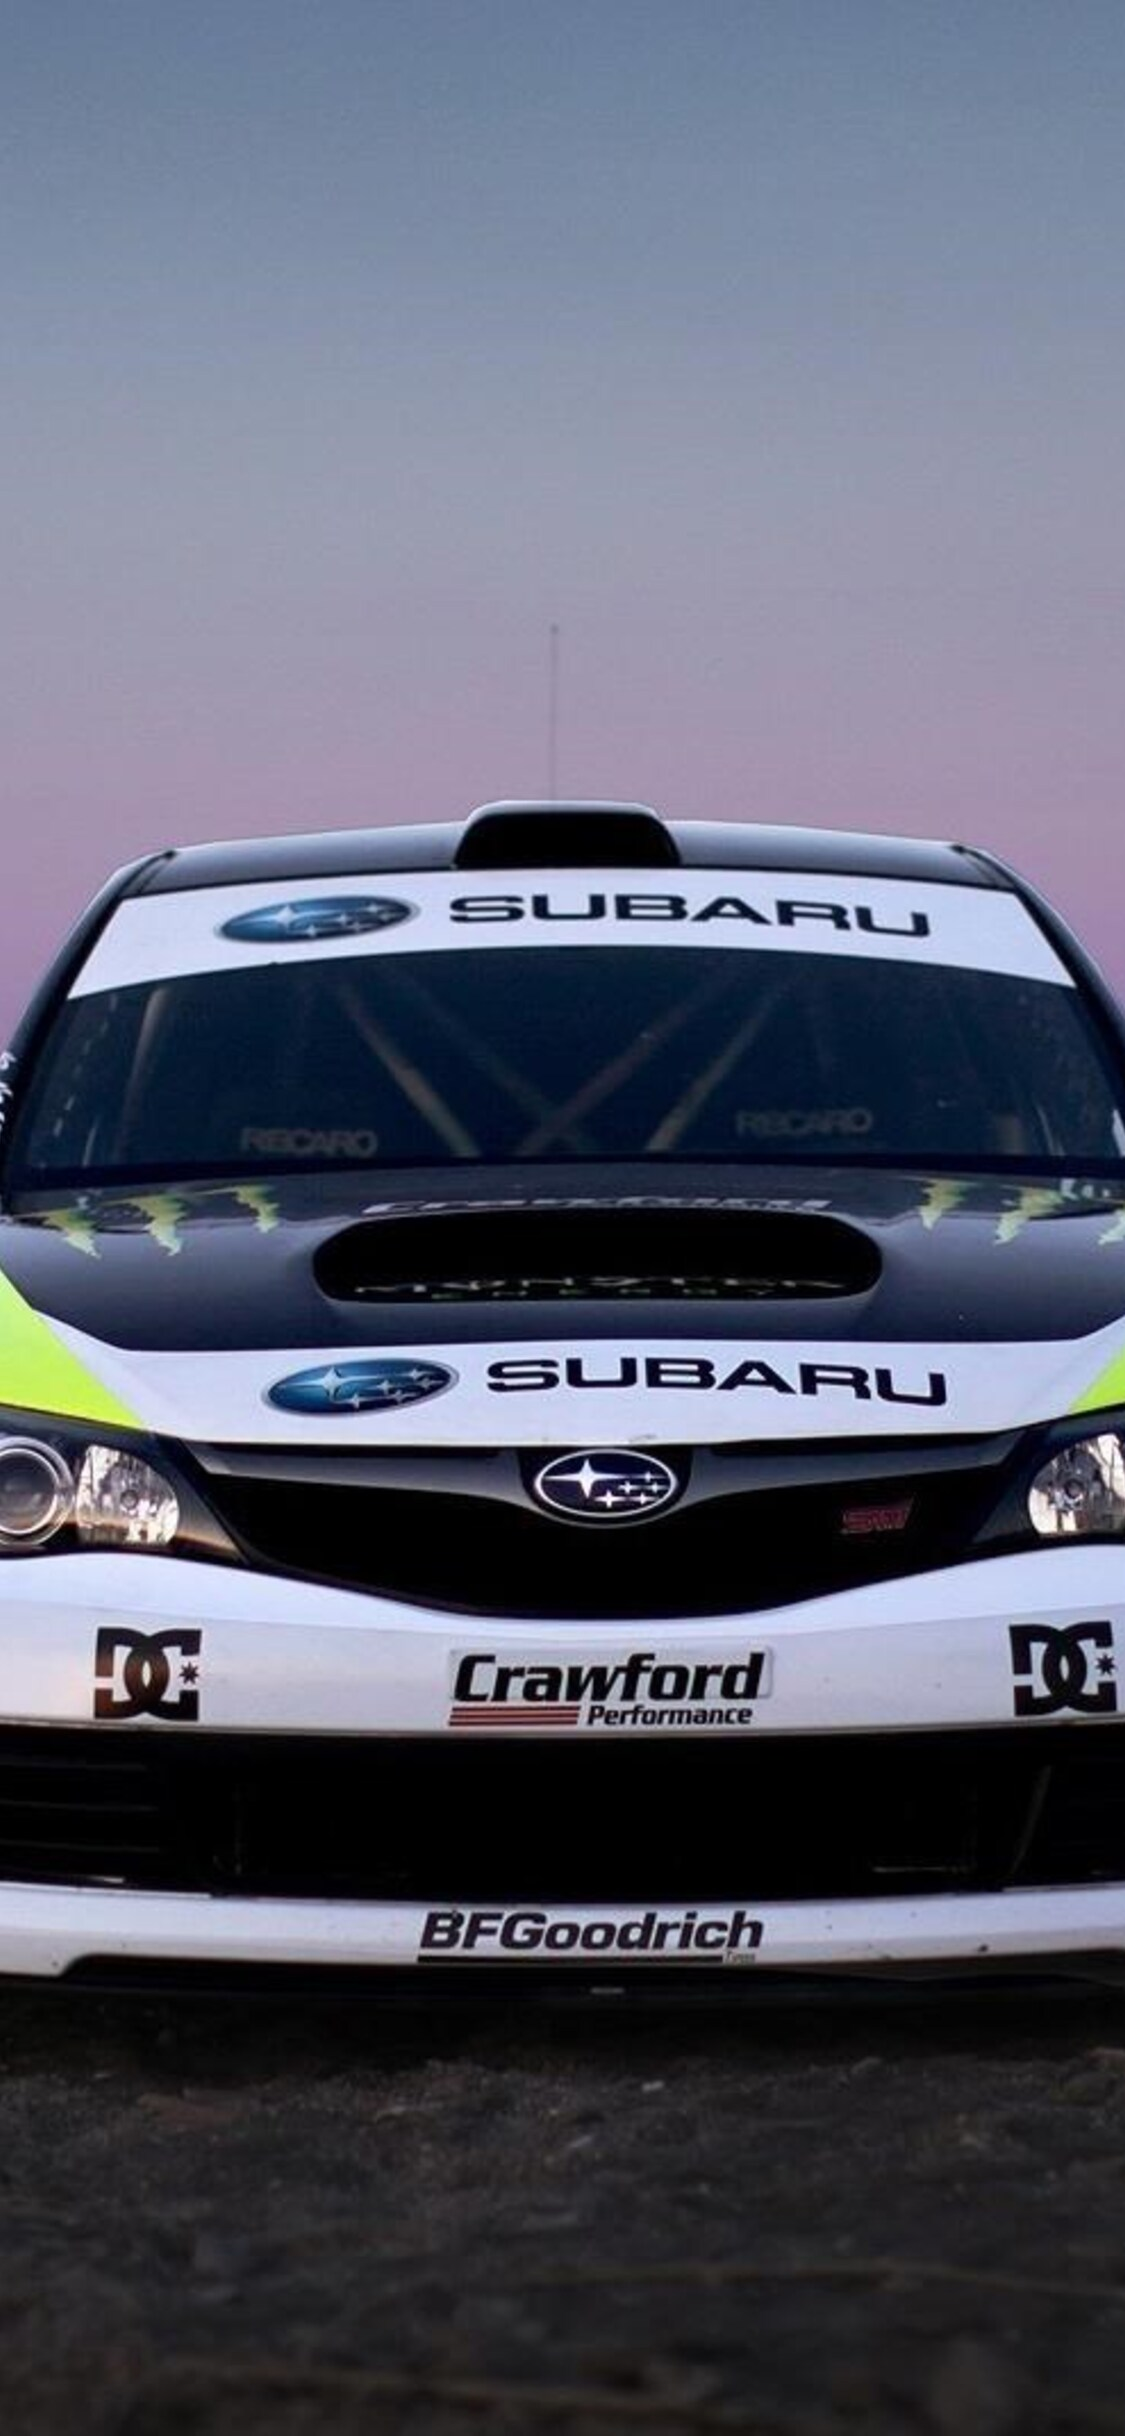 1125x2436 Subaru Rally Car Iphone Xs Iphone 10 Iphone X Hd